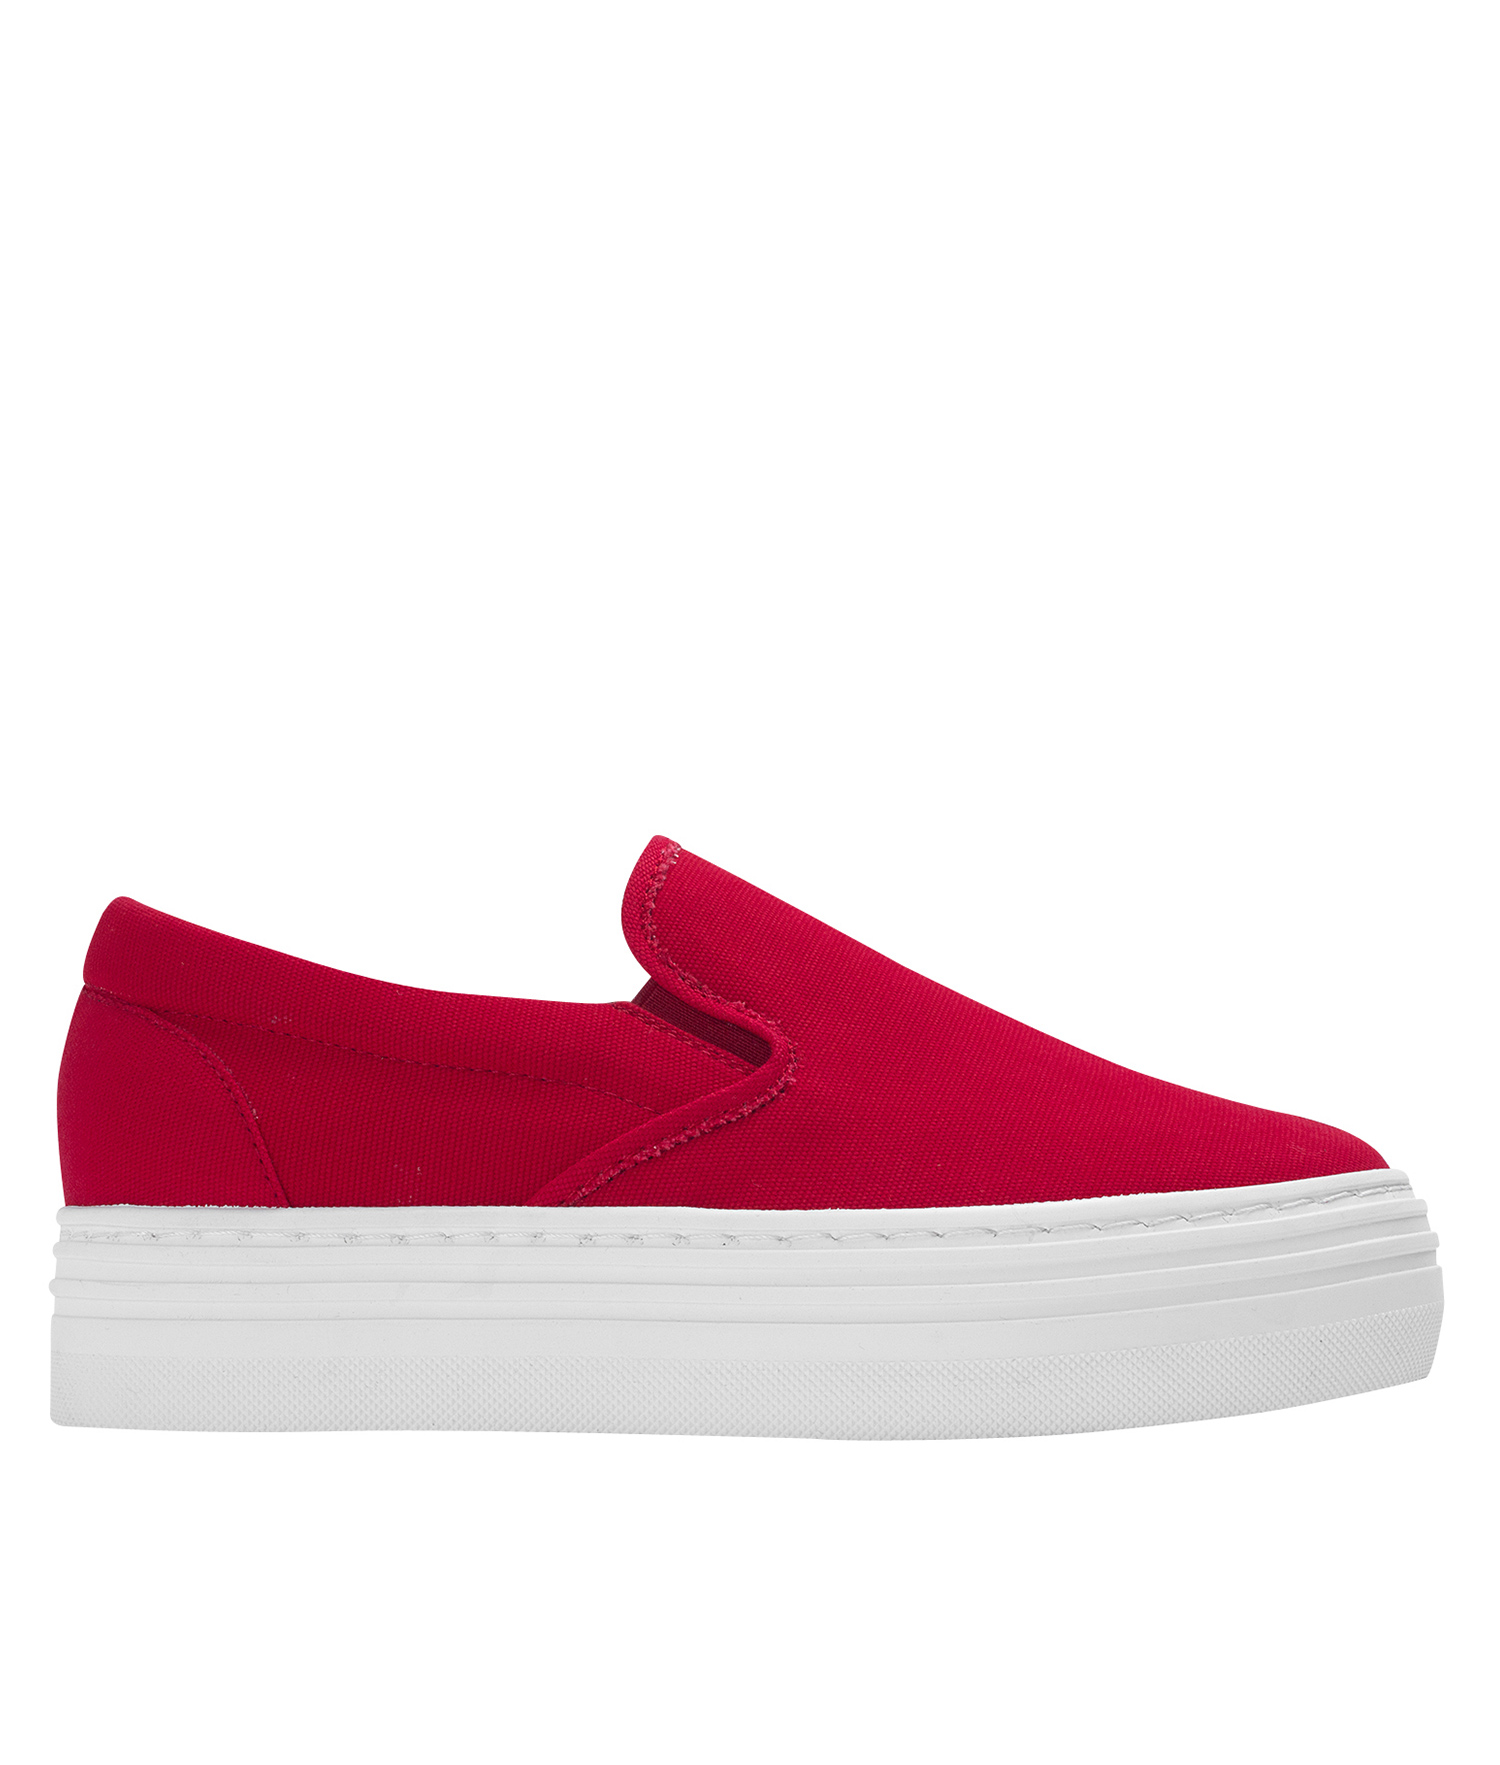 Annakastle Womens Canvas Platform Skate Sneakers Red